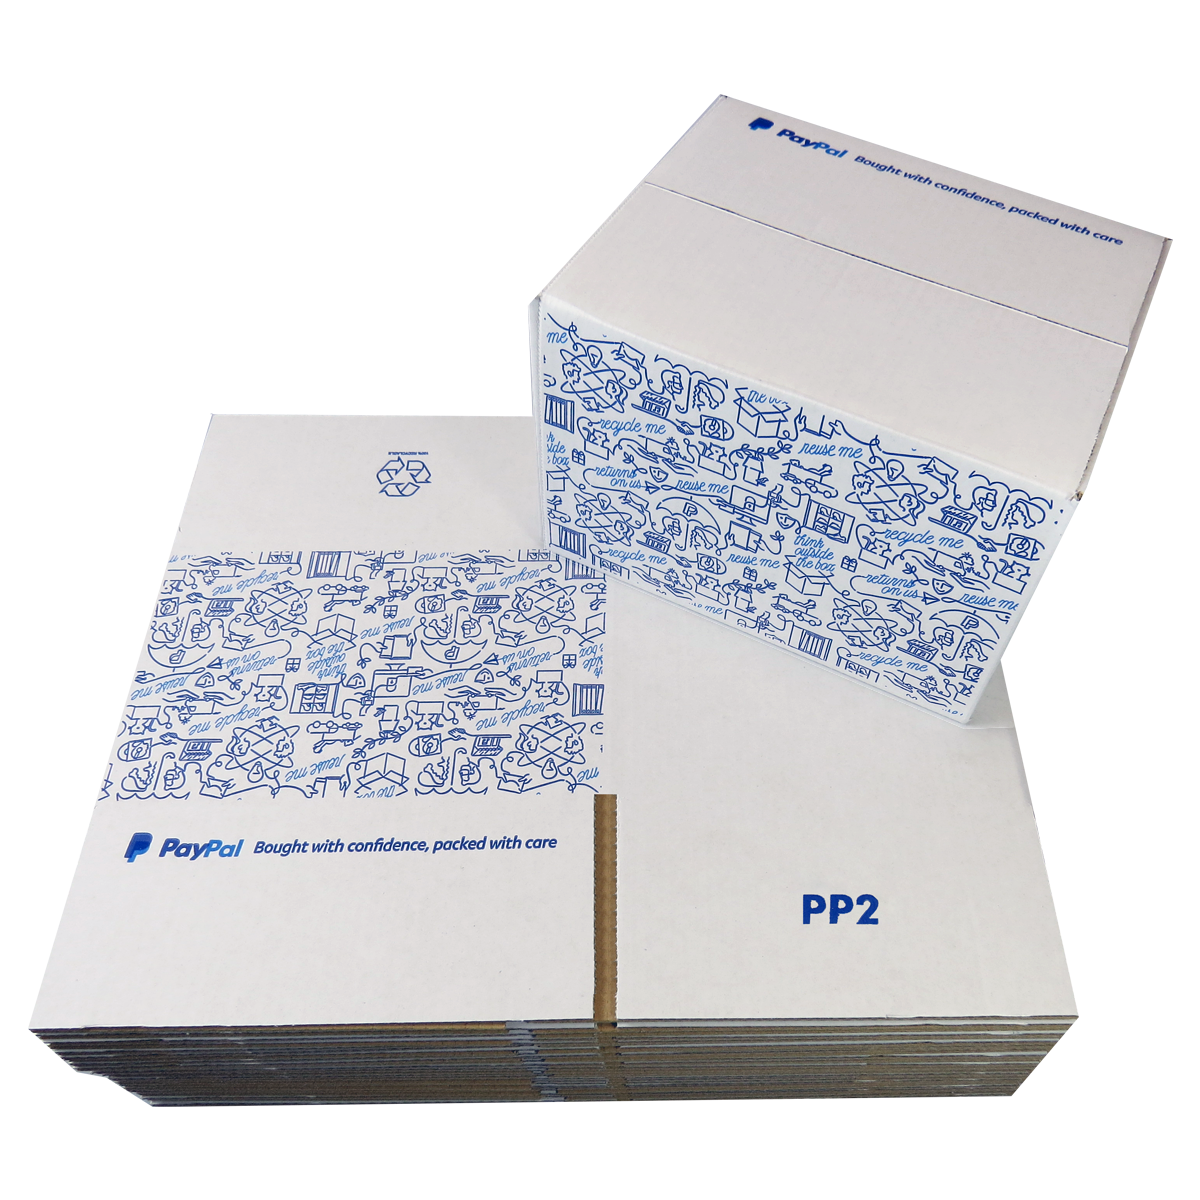 25 x PP2 PayPal Branded Quality White Single Wall Cardboard Postal Mailing Boxes 215x180x135mm